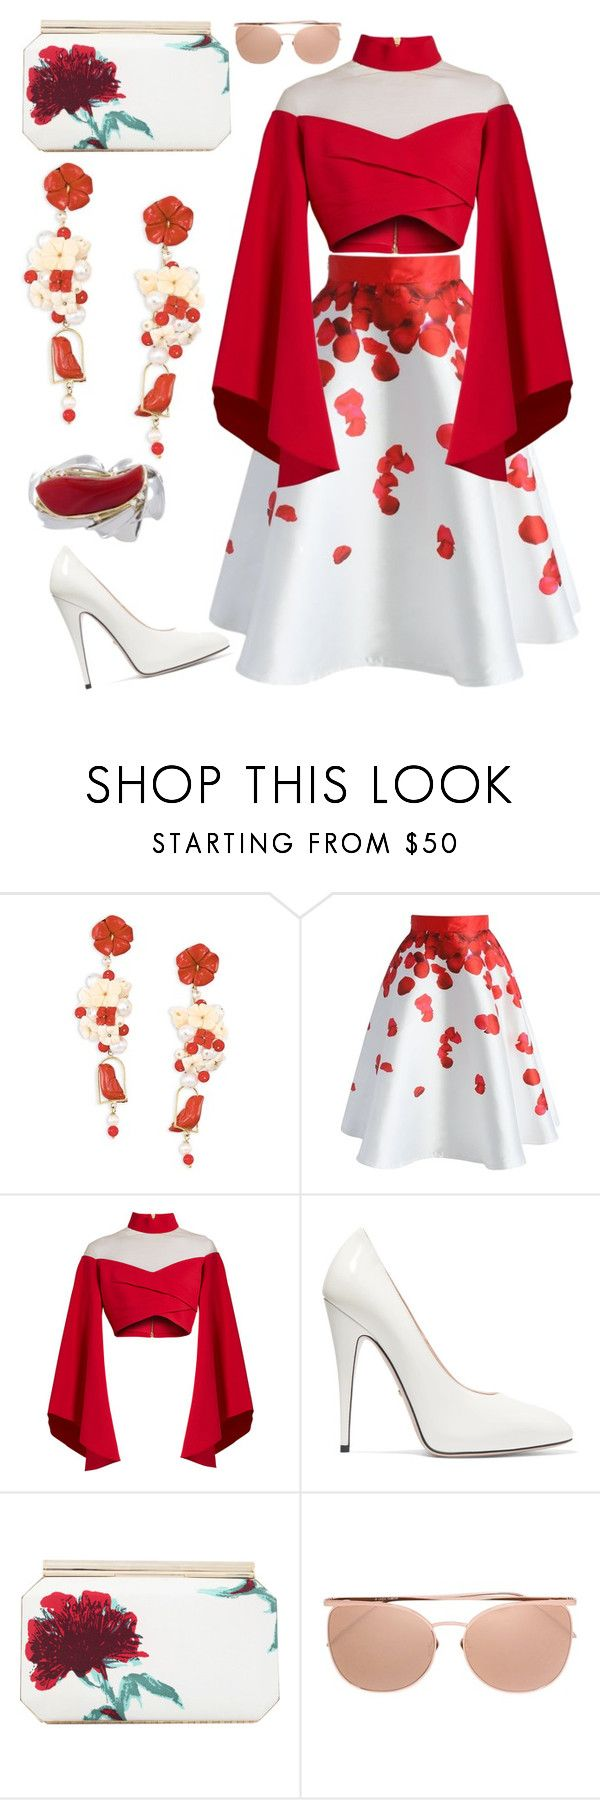 """skirt"" by rrnth ❤ liked on Polyvore featuring Of Rare Origin, Chicwish, Balmain, Gucci, Oscar de la Renta and Linda Farrow"